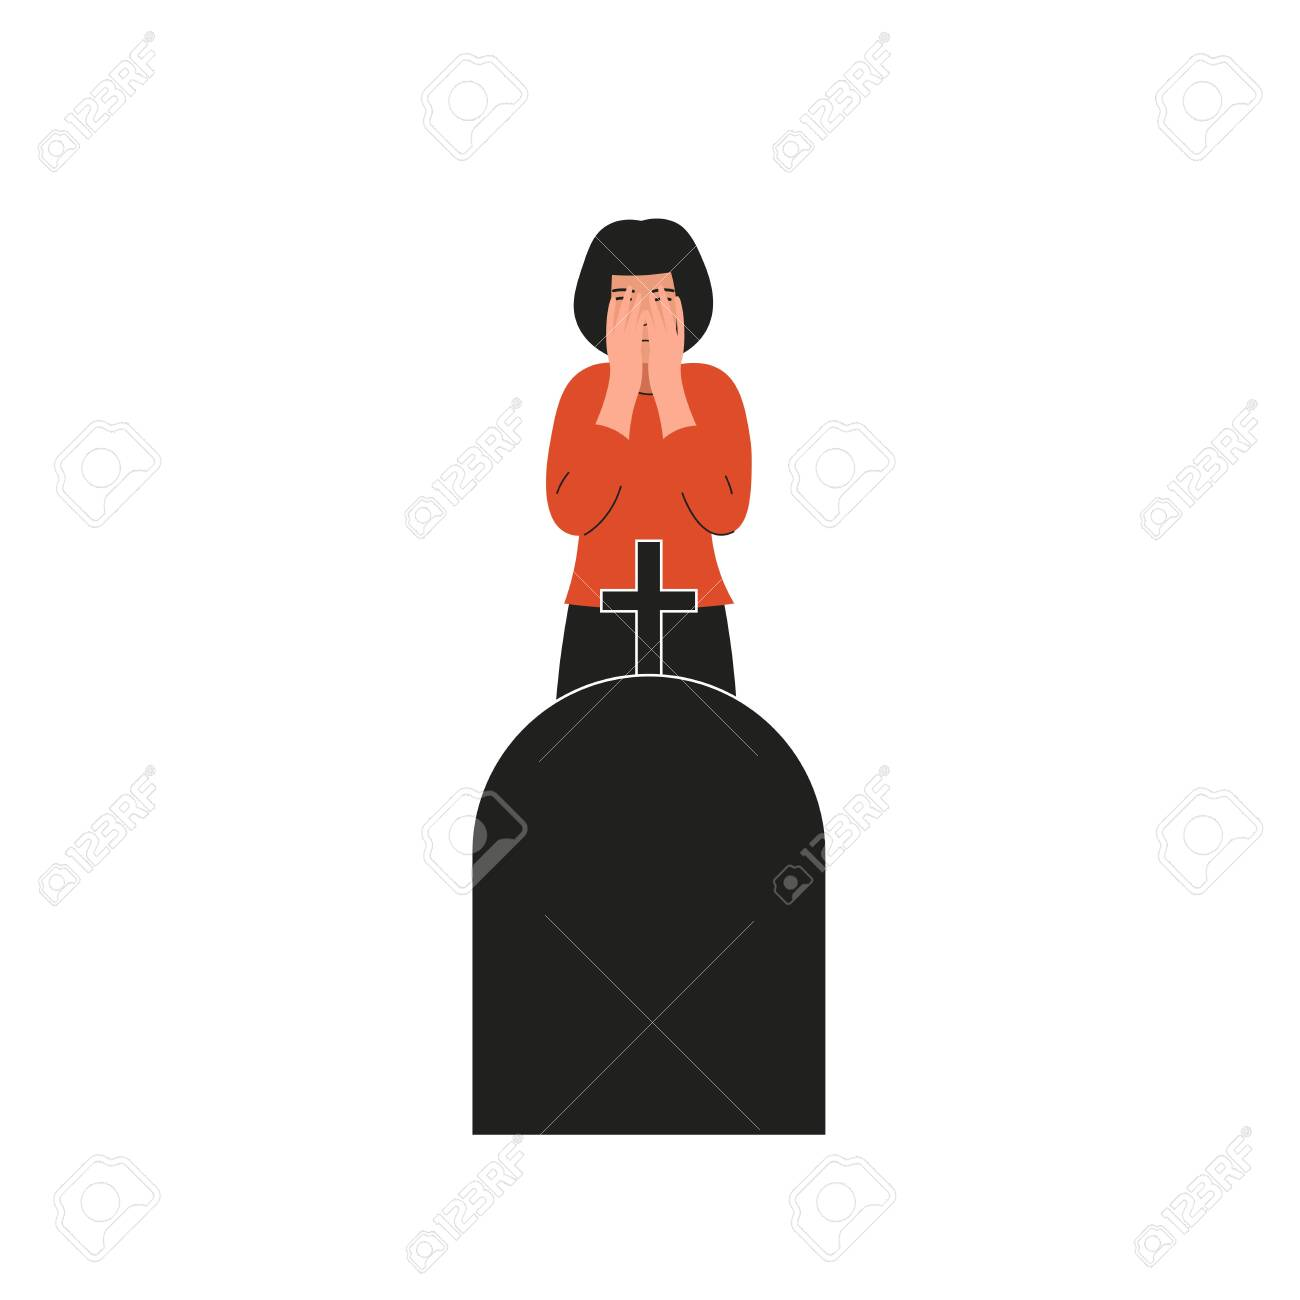 Woman crying over the grave. Girl covers her face and cries. Sad female character, bad emotions, solitude. Flat vector cartoon illustration design. - 136957776